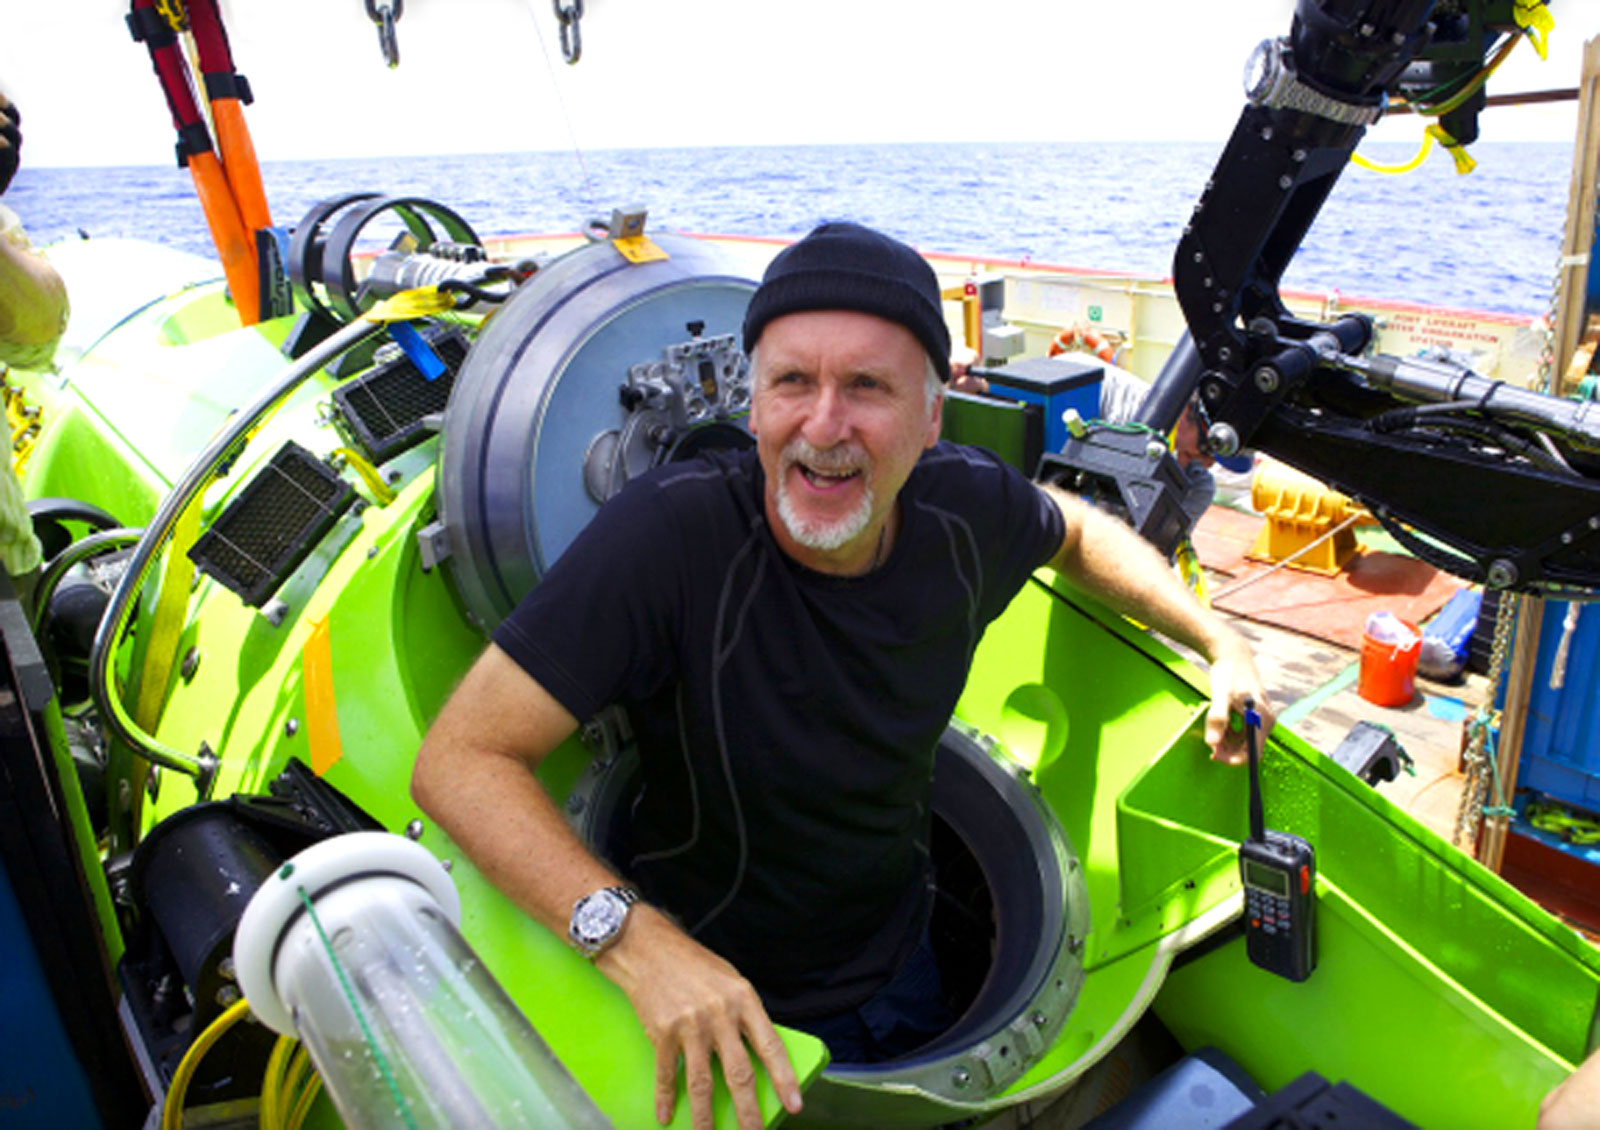 James-Cameron-after-successful-dive-with-Rolex-DEEPSEA-CHALLENGE-on-Robotic-Arm-1lehi6l